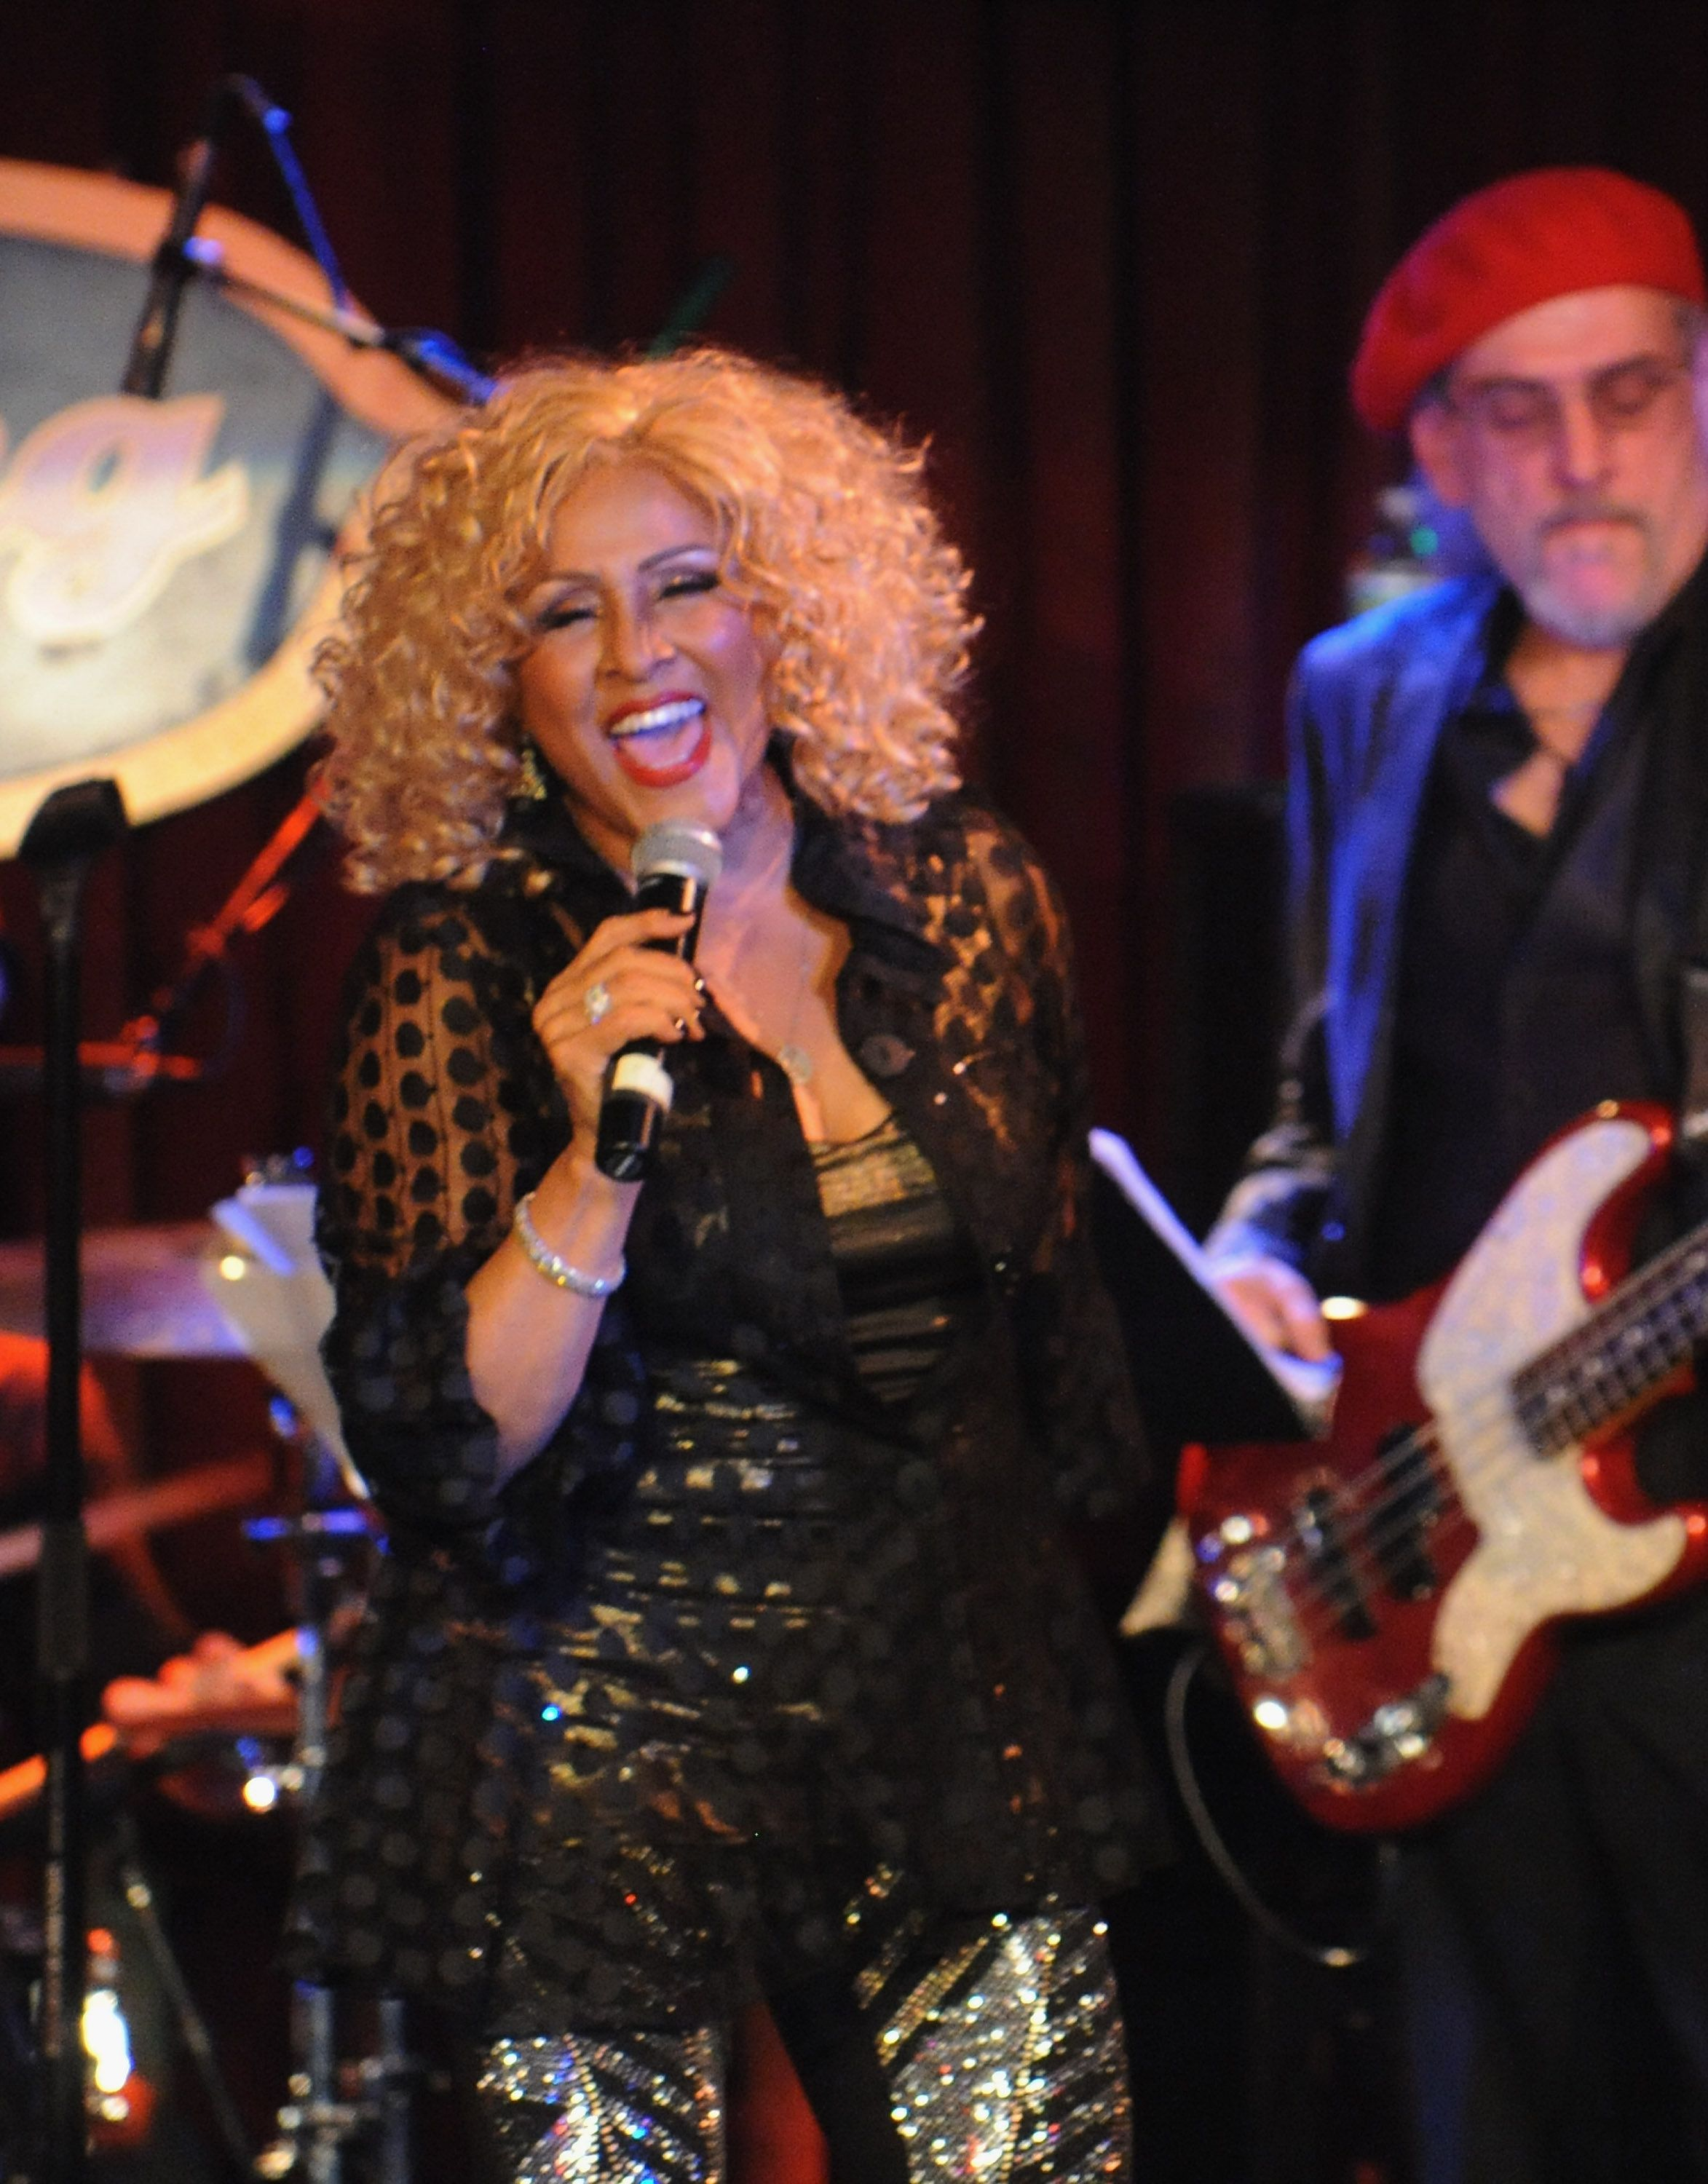 NEW YORK, NY - DECEMBER 19:  Darlene Love performs 'A Darlene Love Christmas' at B.B. King Blues Club & Grill on December 19, 2014 in New York City.  (Photo by Bobby Bank/WireImage)